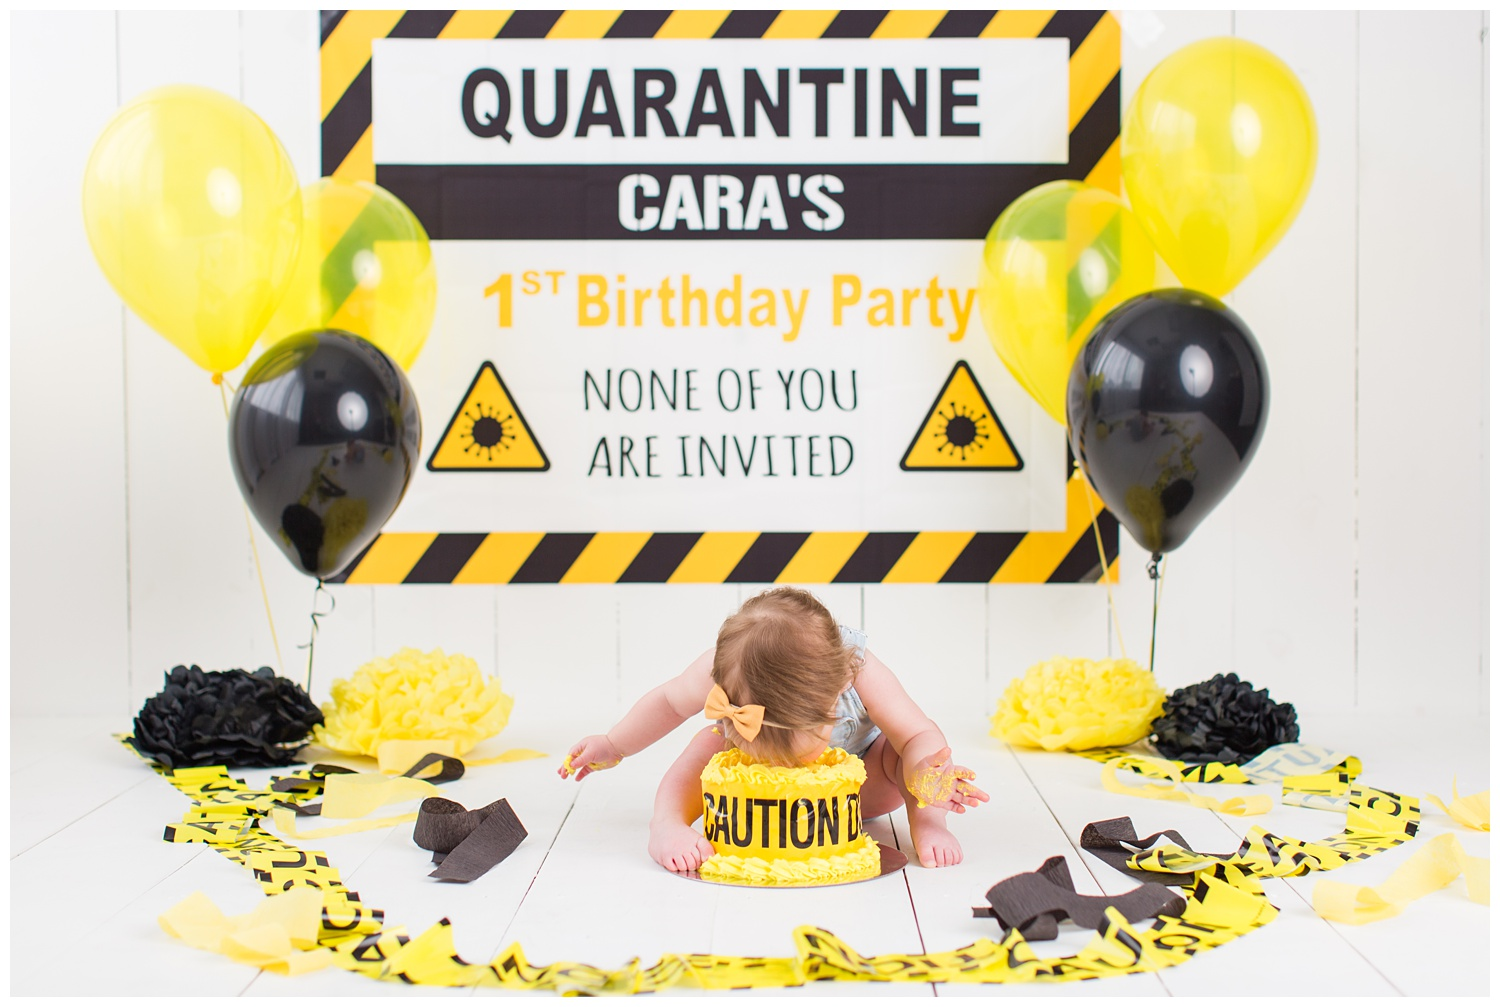 Quarantined themed cake smash complete with caution tape and yellow and black balloons | CB Studio